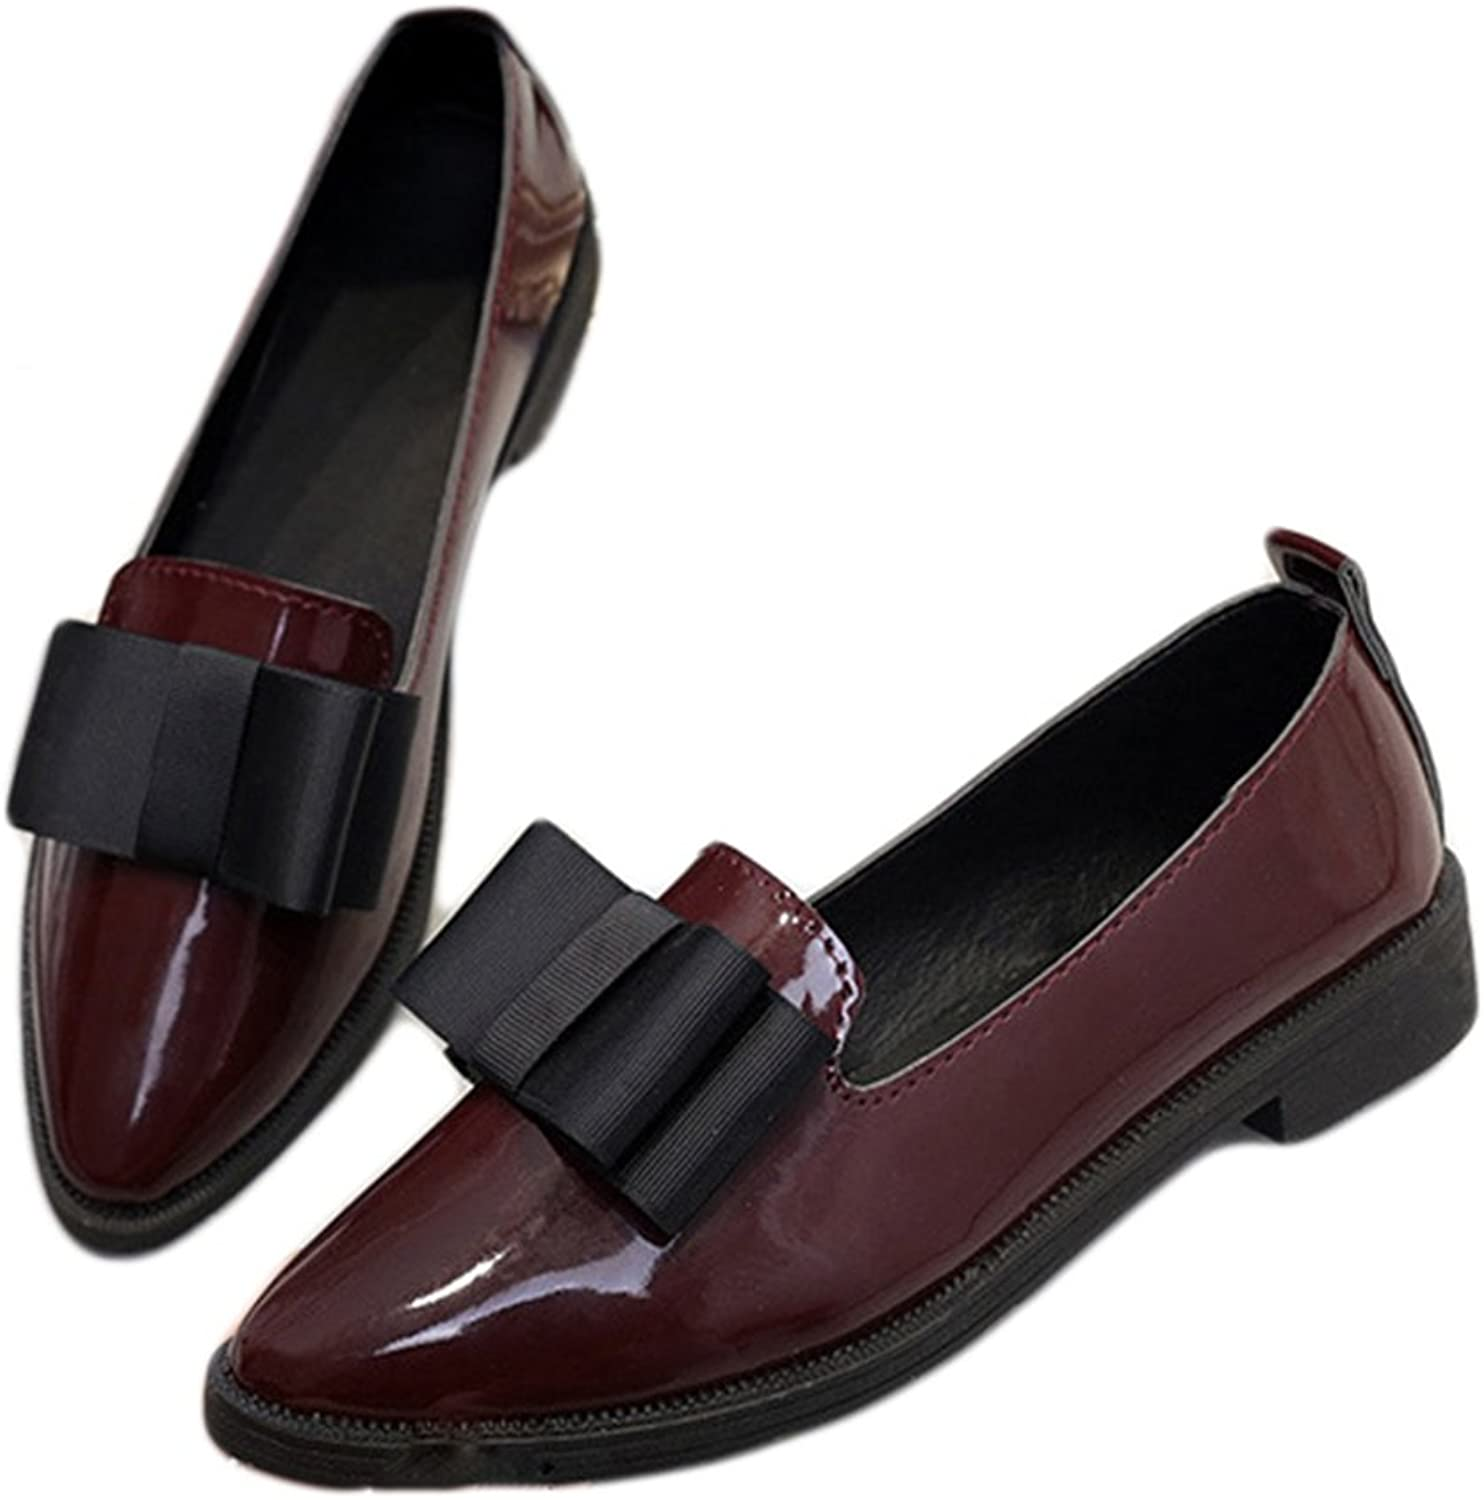 Btrada Women's Casual Bowknot Flat Point Toe Work Oxfords Loafers shoes